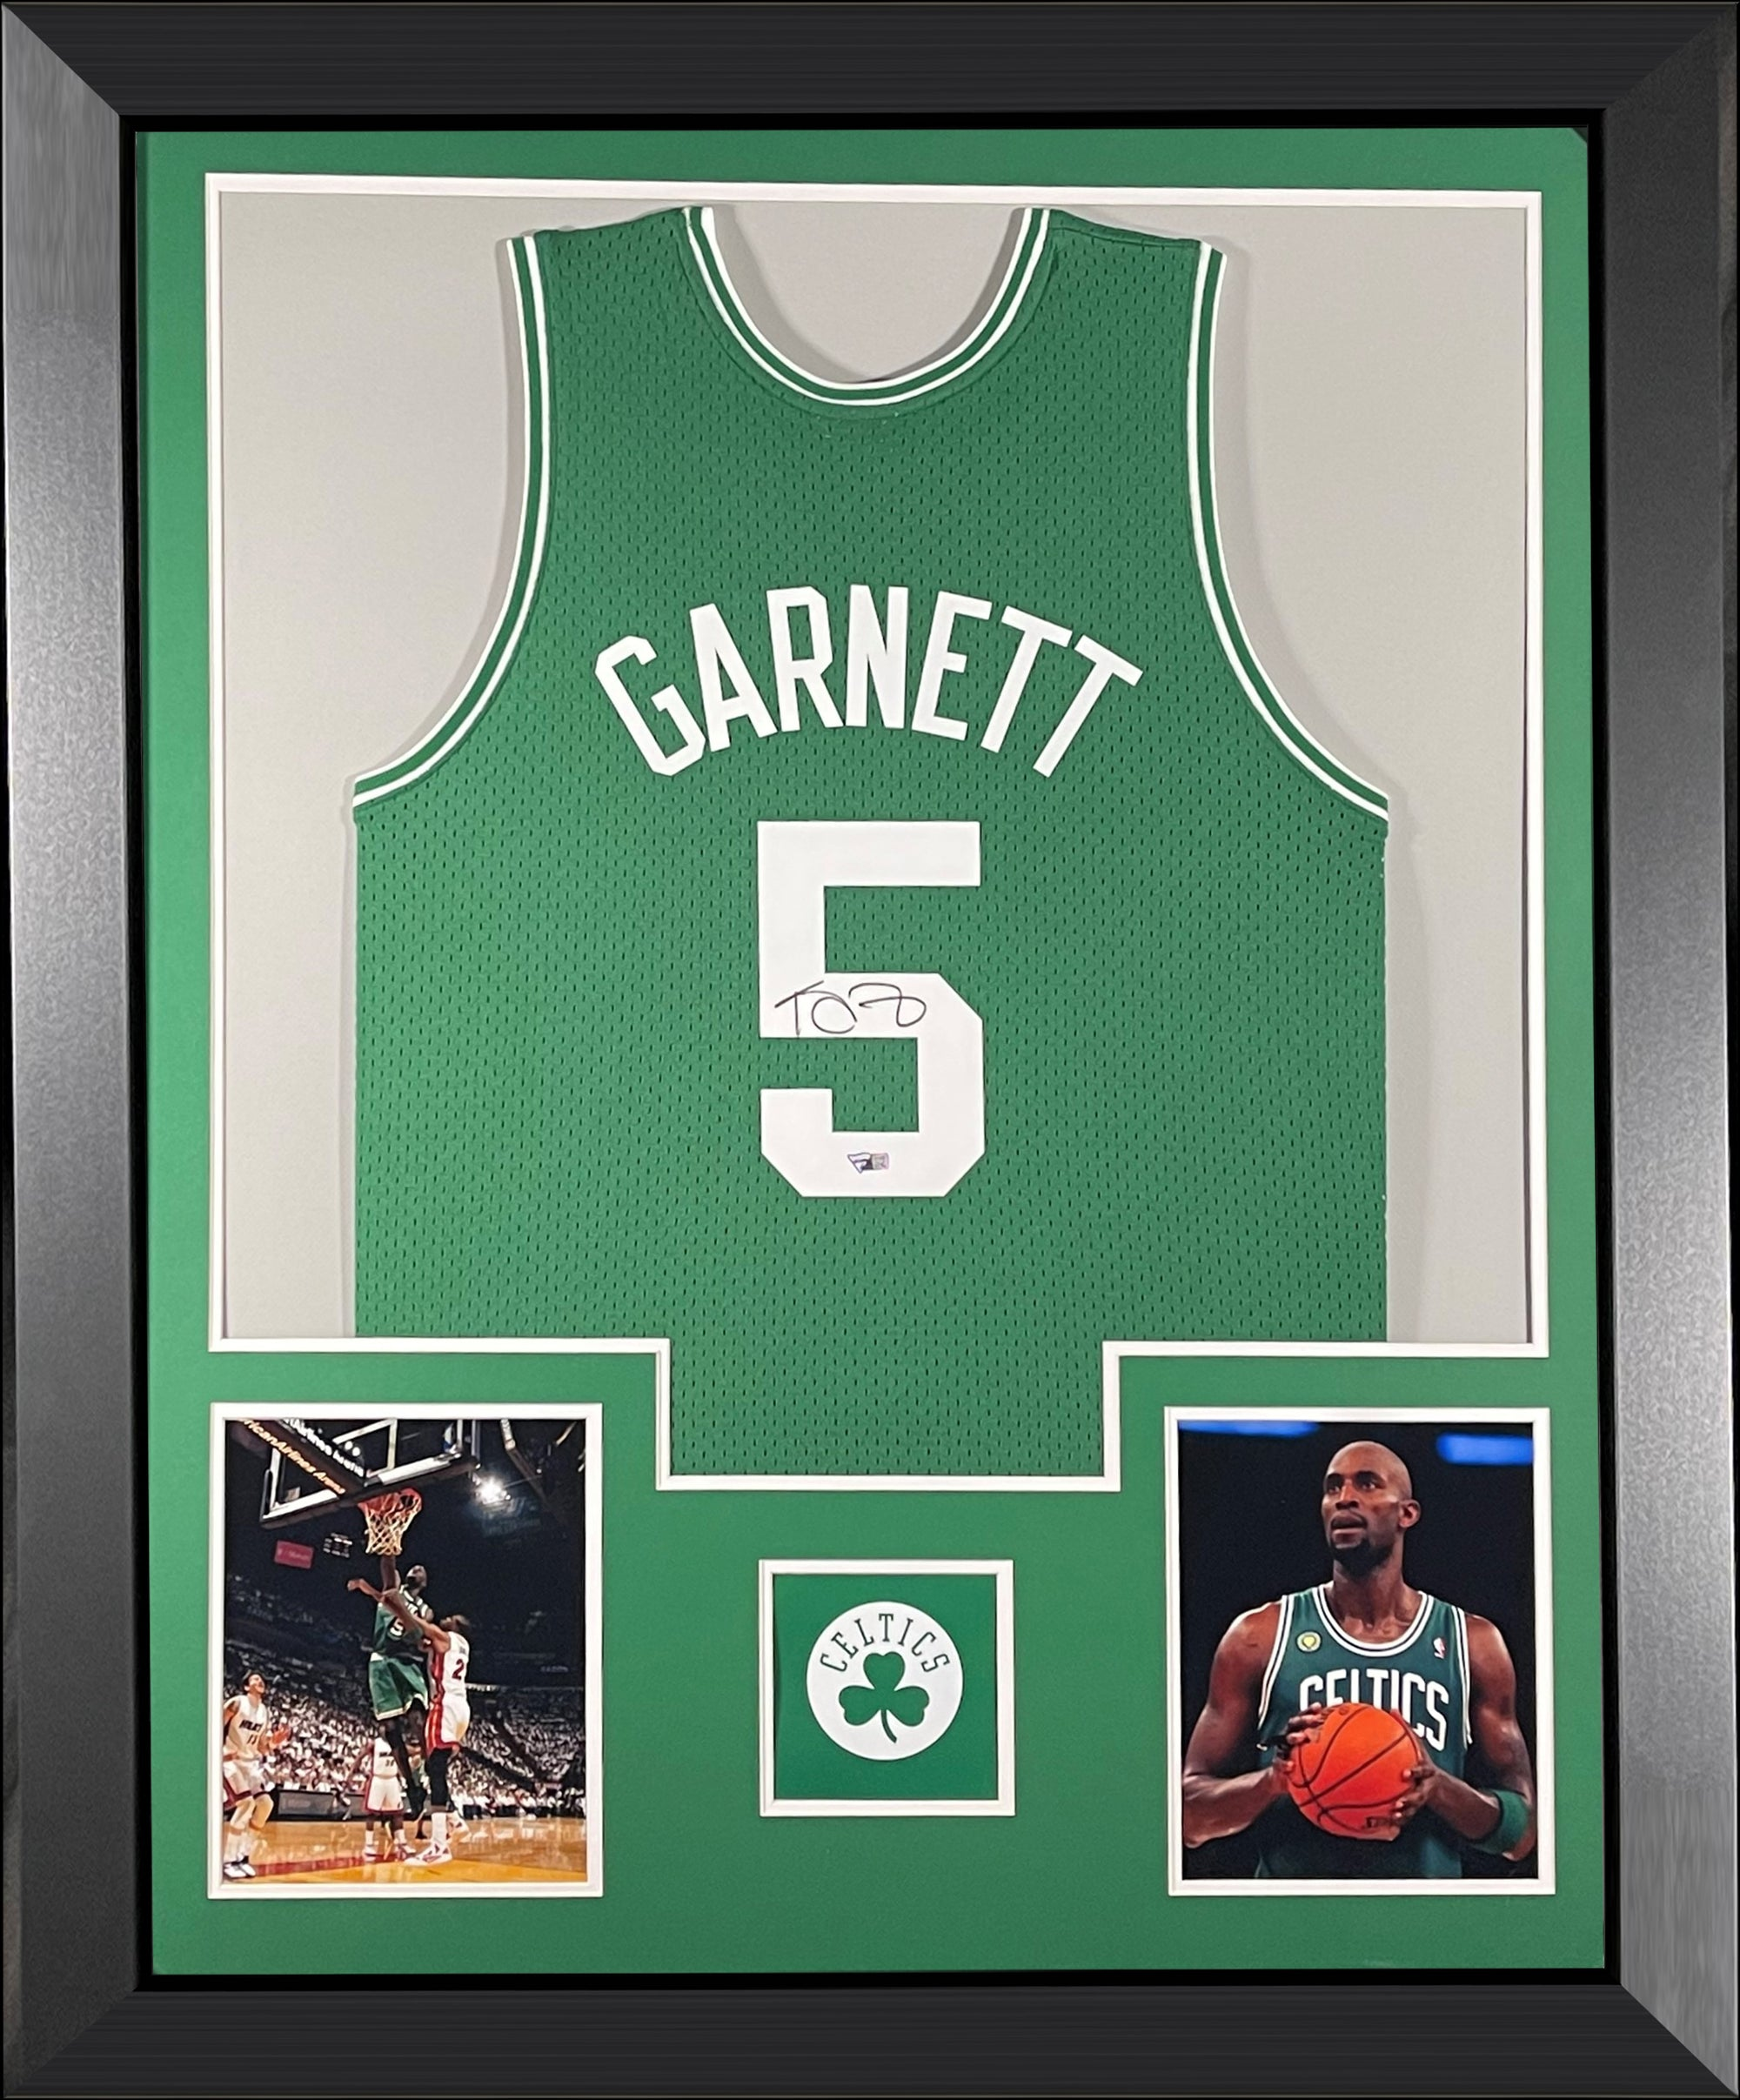 Kevin Garnett Autographed Boston Celtics 2007-2008 Mitchell and Ness NBA Swingman Signed Basketball Framed Jersey Fanatics Authentic COA-Powers Sports Memorabilia